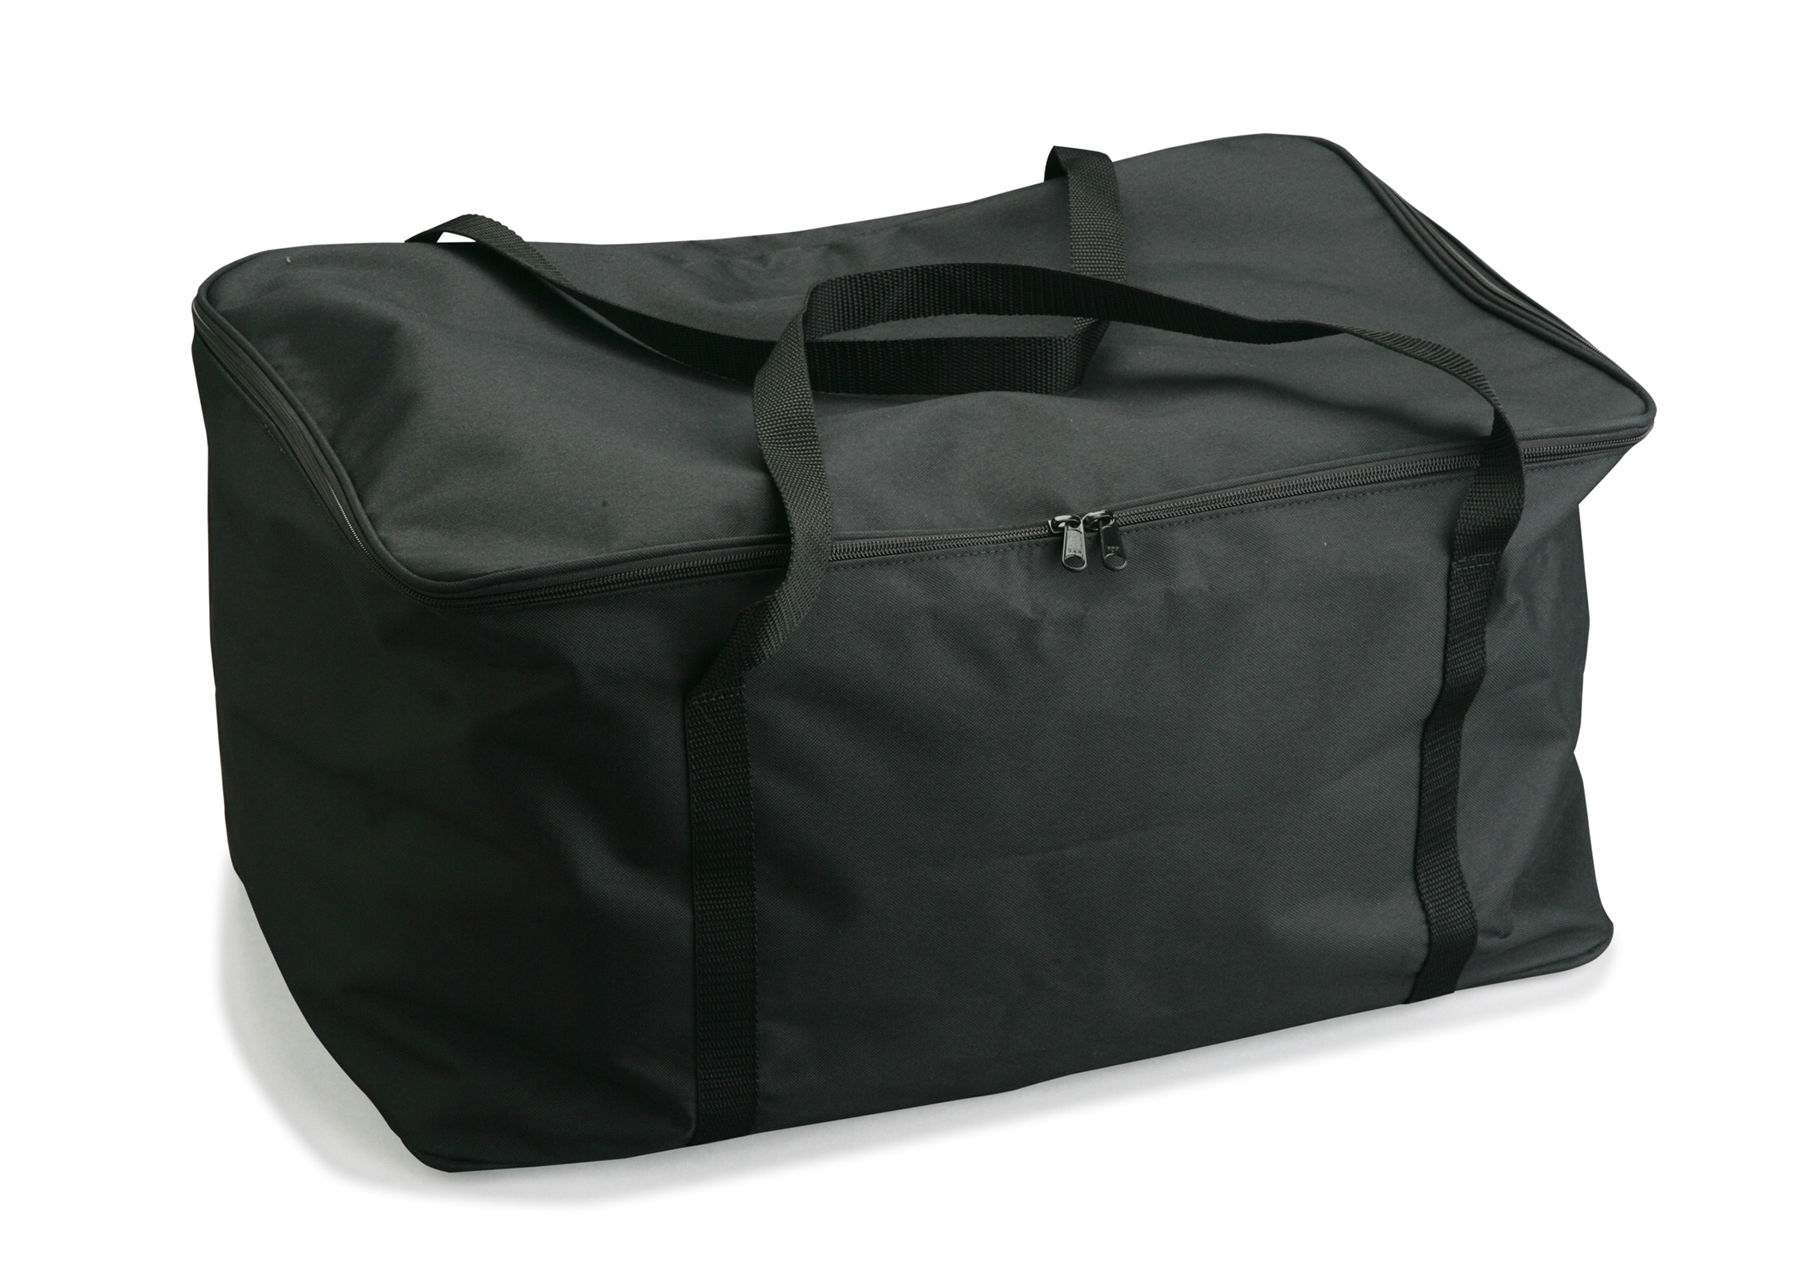 ZTOTE1GY Covercraft Car Cover Storage Bag Duffle Style